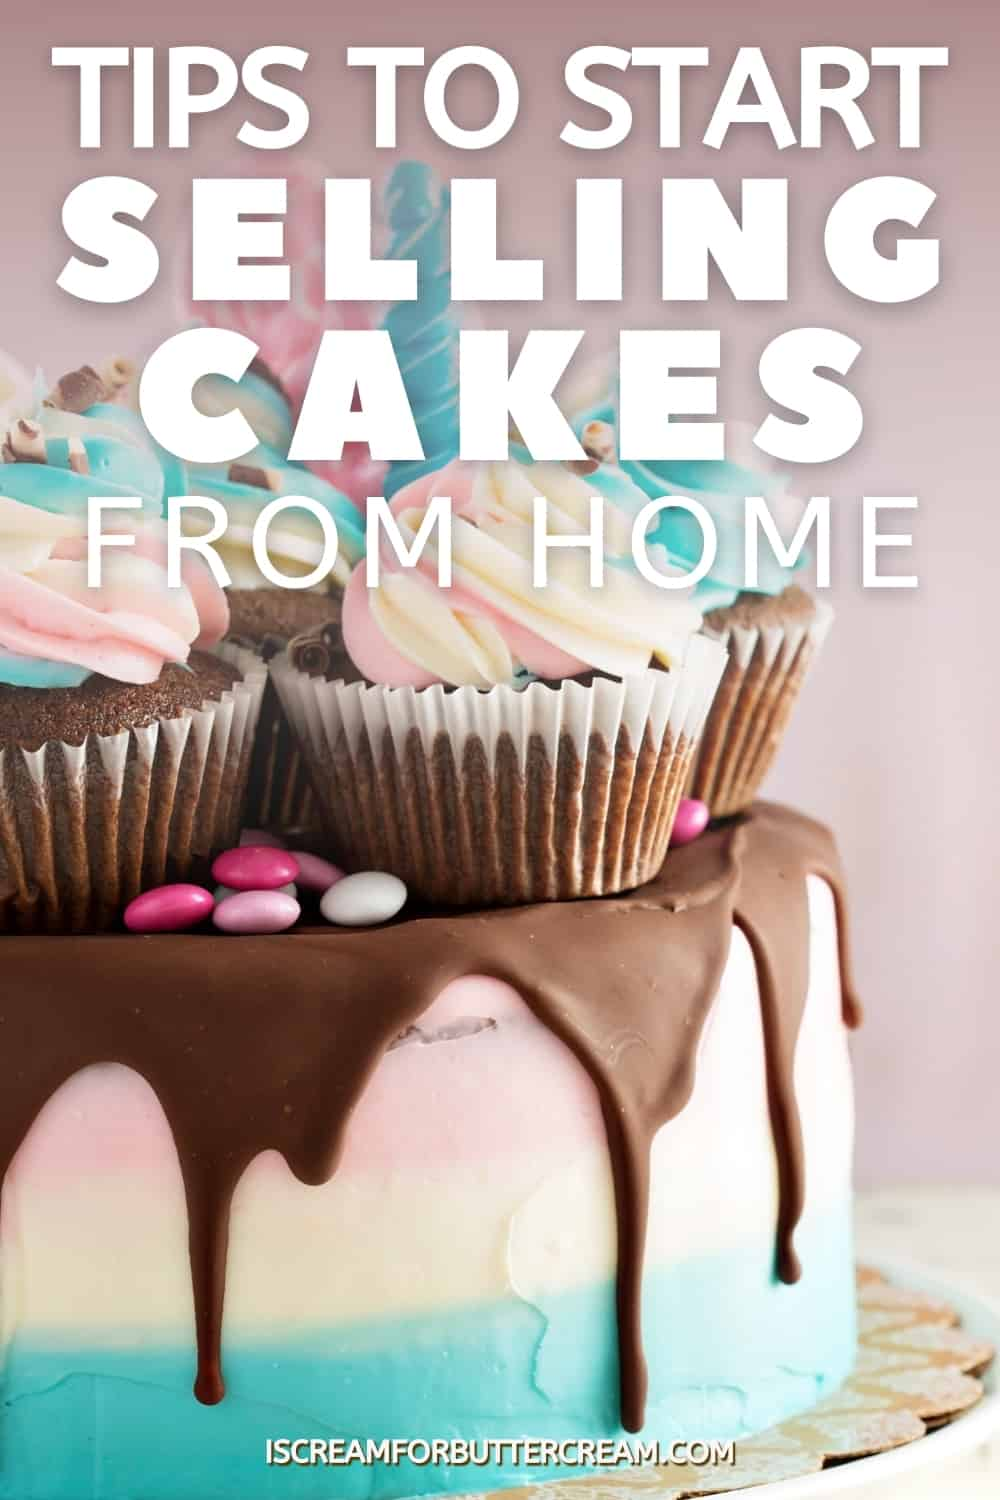 selling cakes pin graphic with text overlay